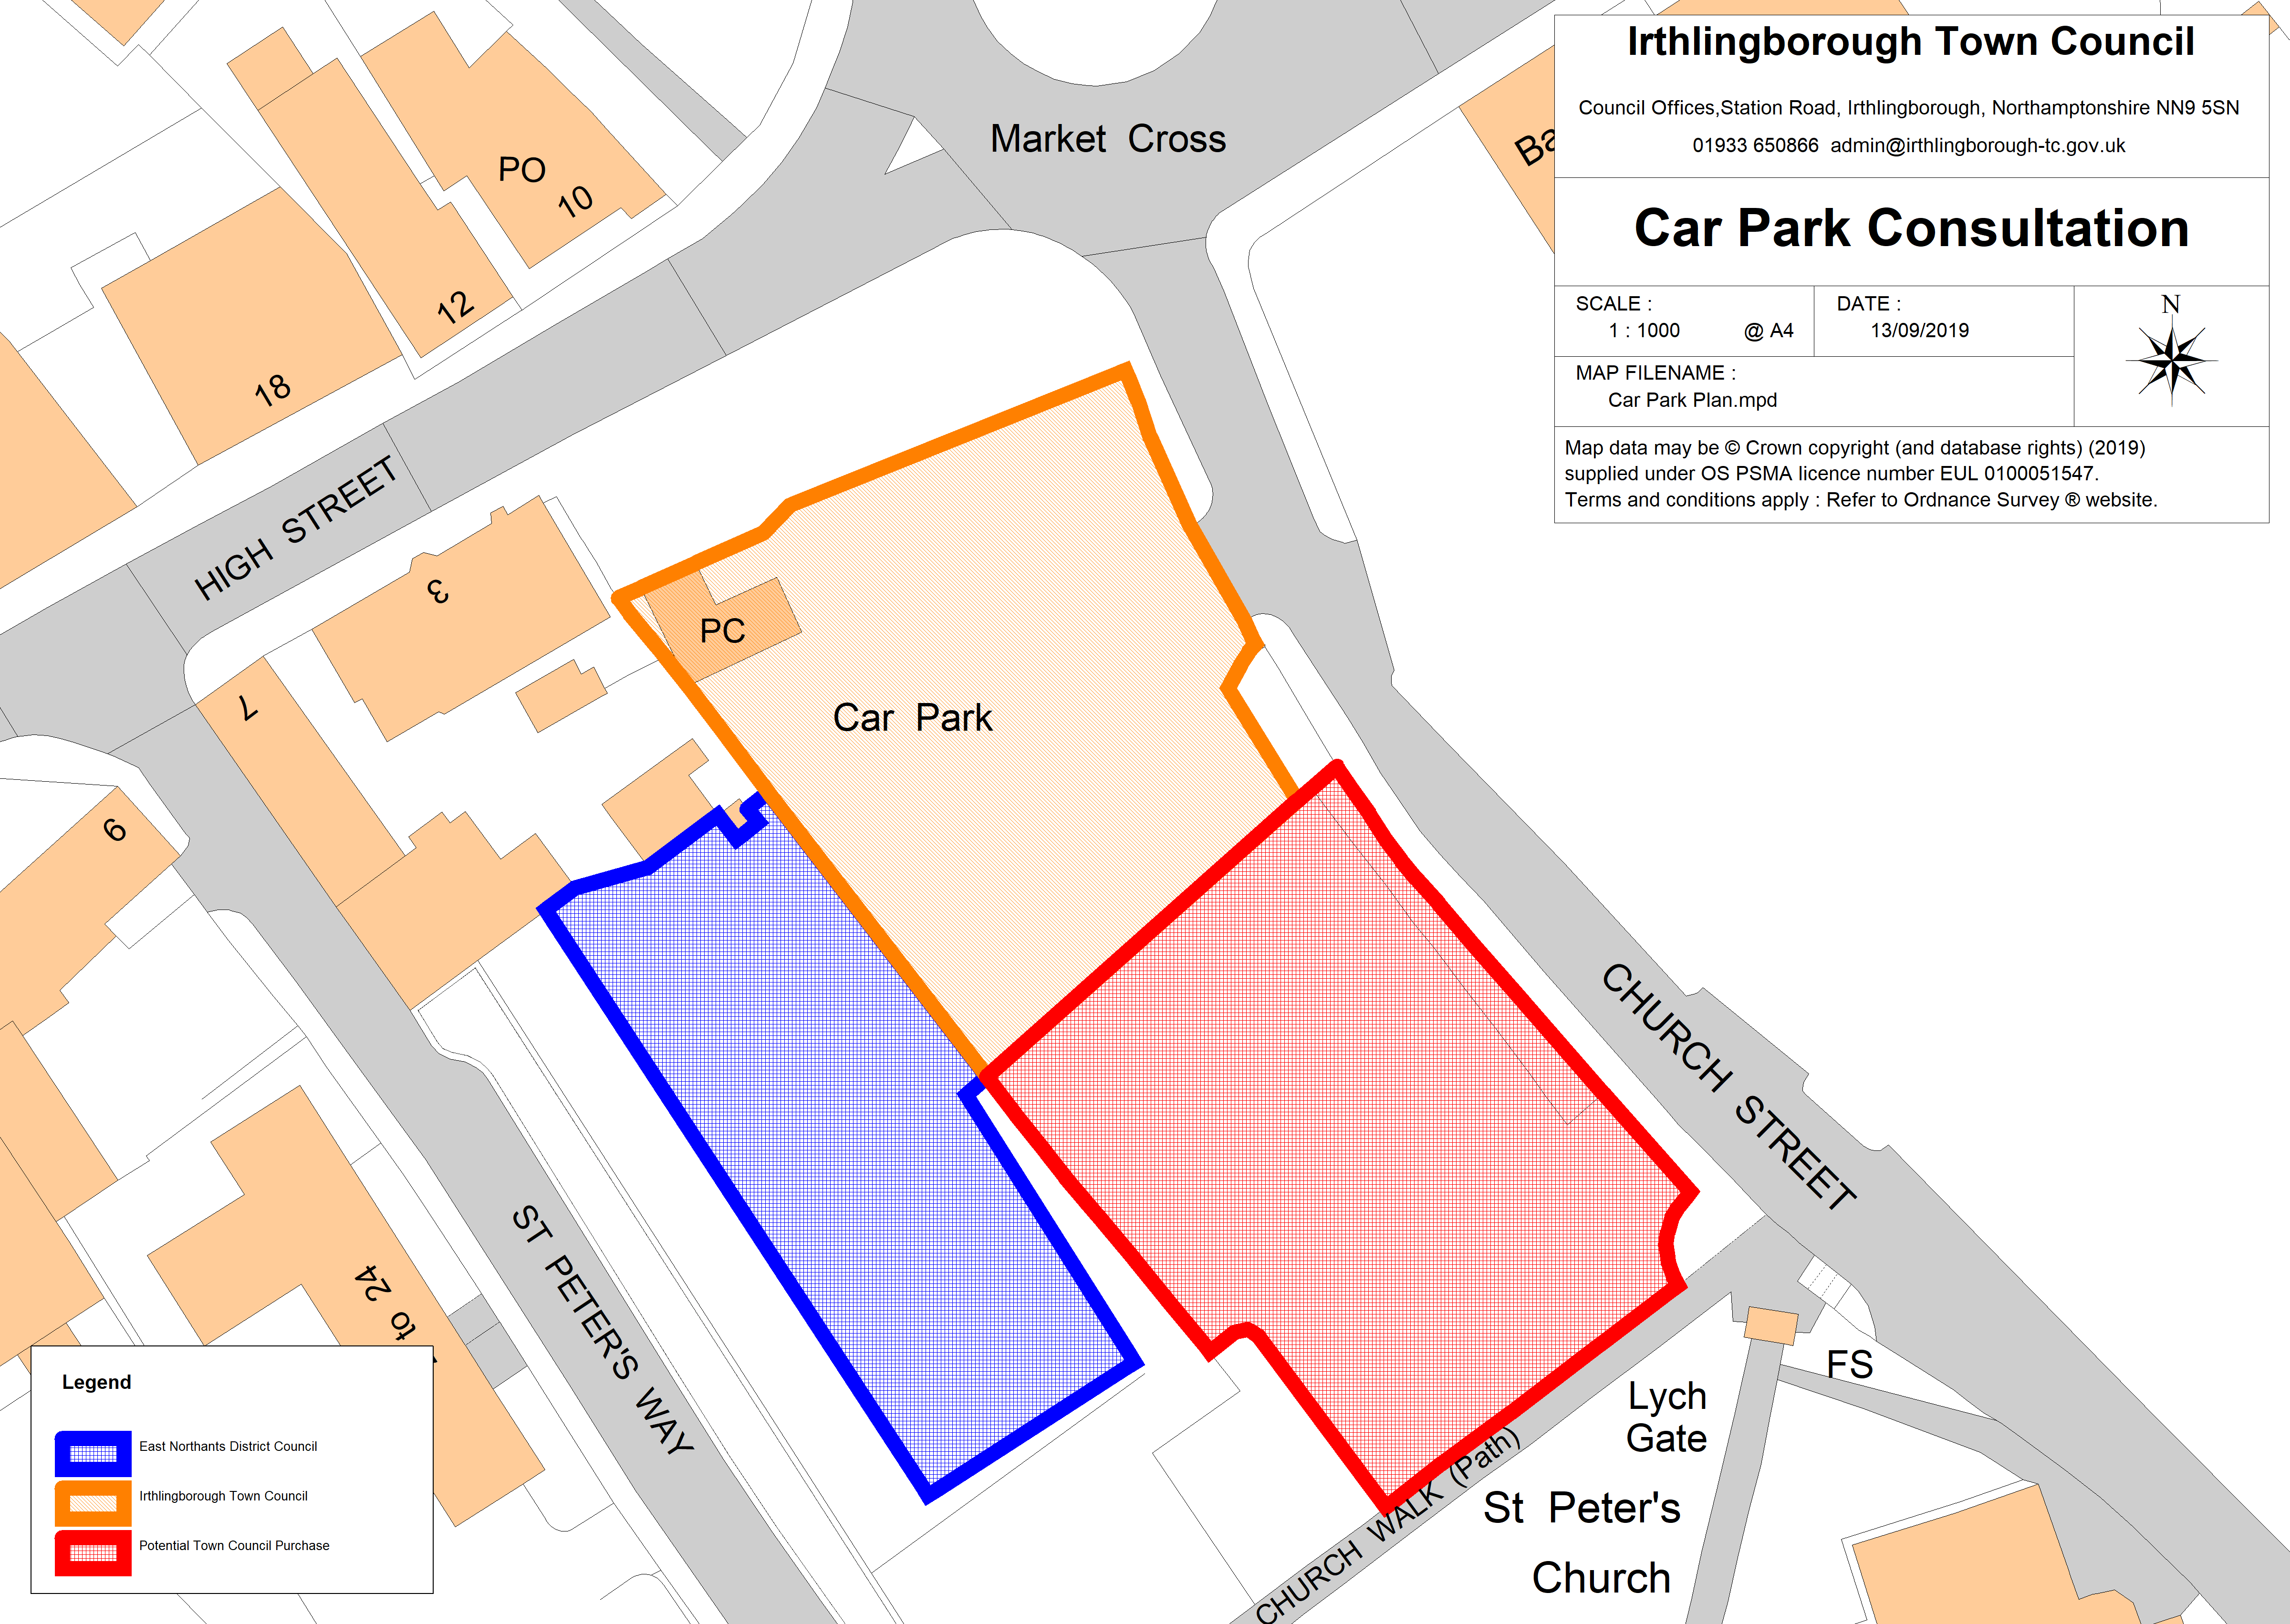 Irthlingborough Town Centre Car Park - map detailing current ownership